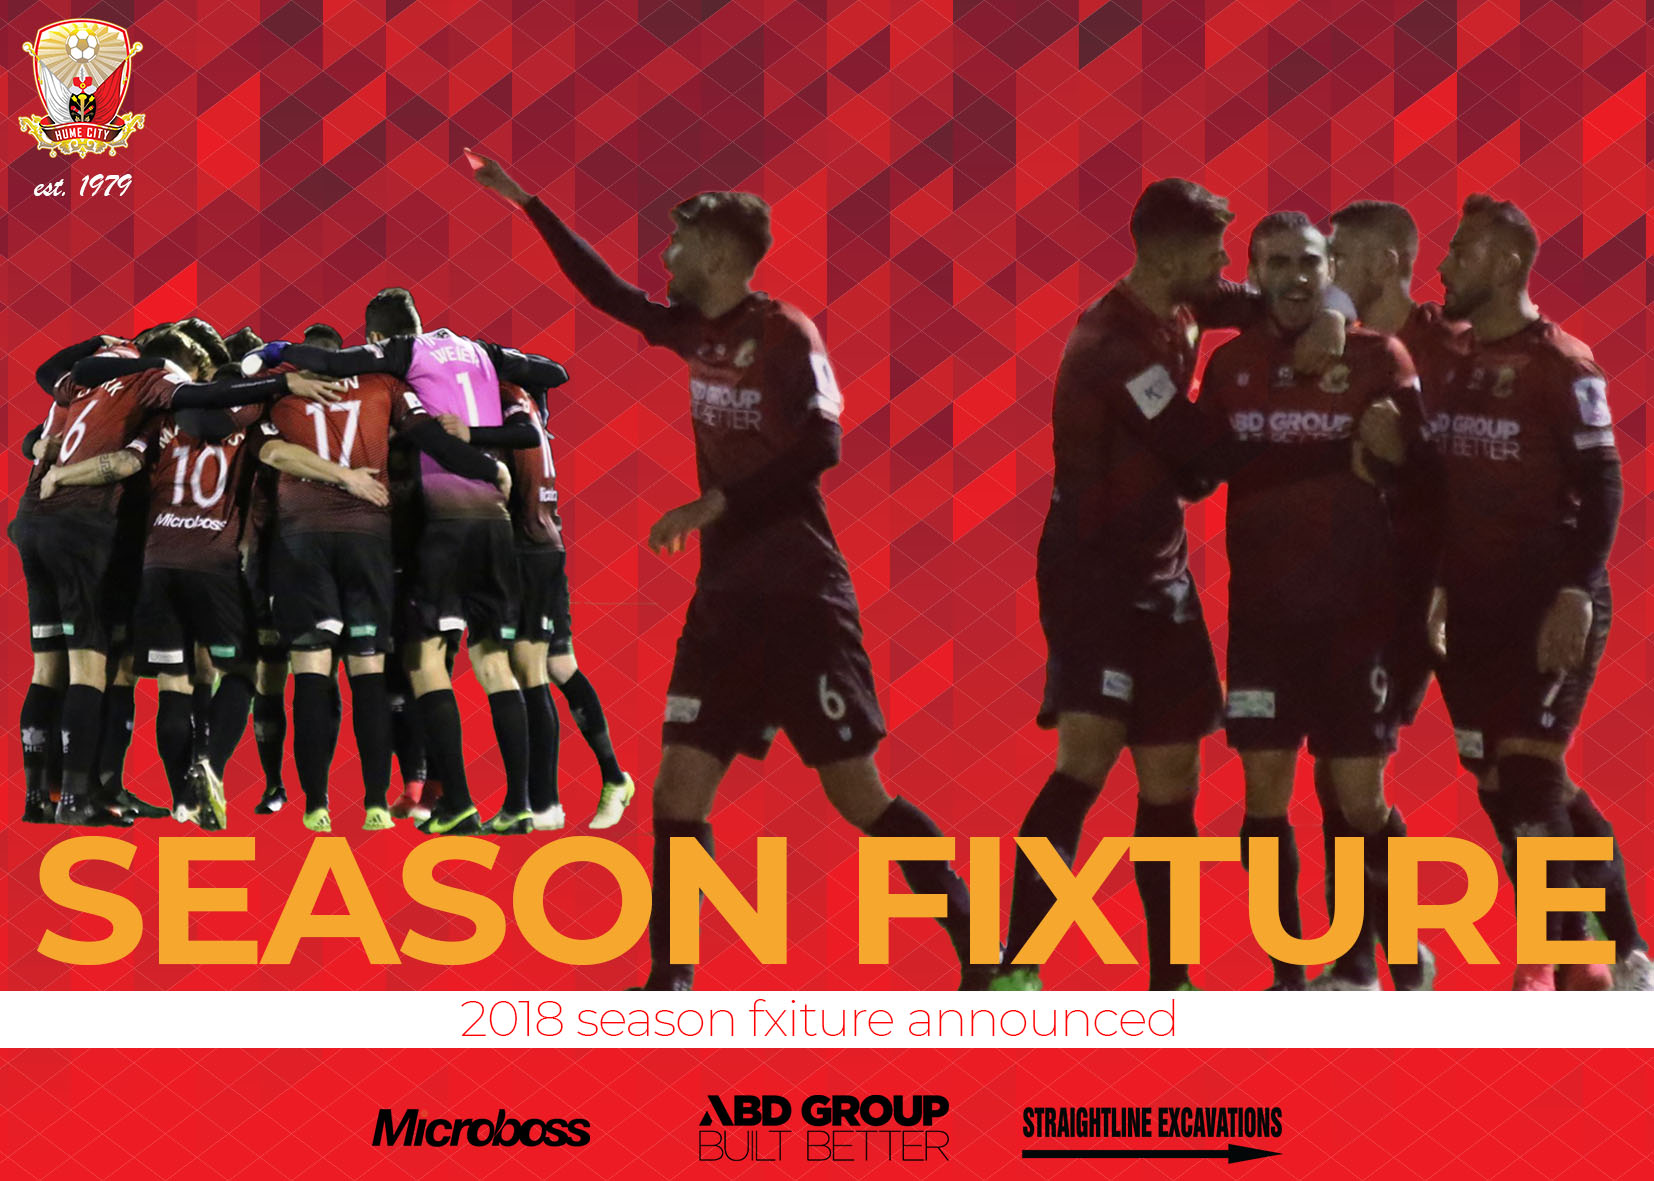 NPL 2018 season fixture announced